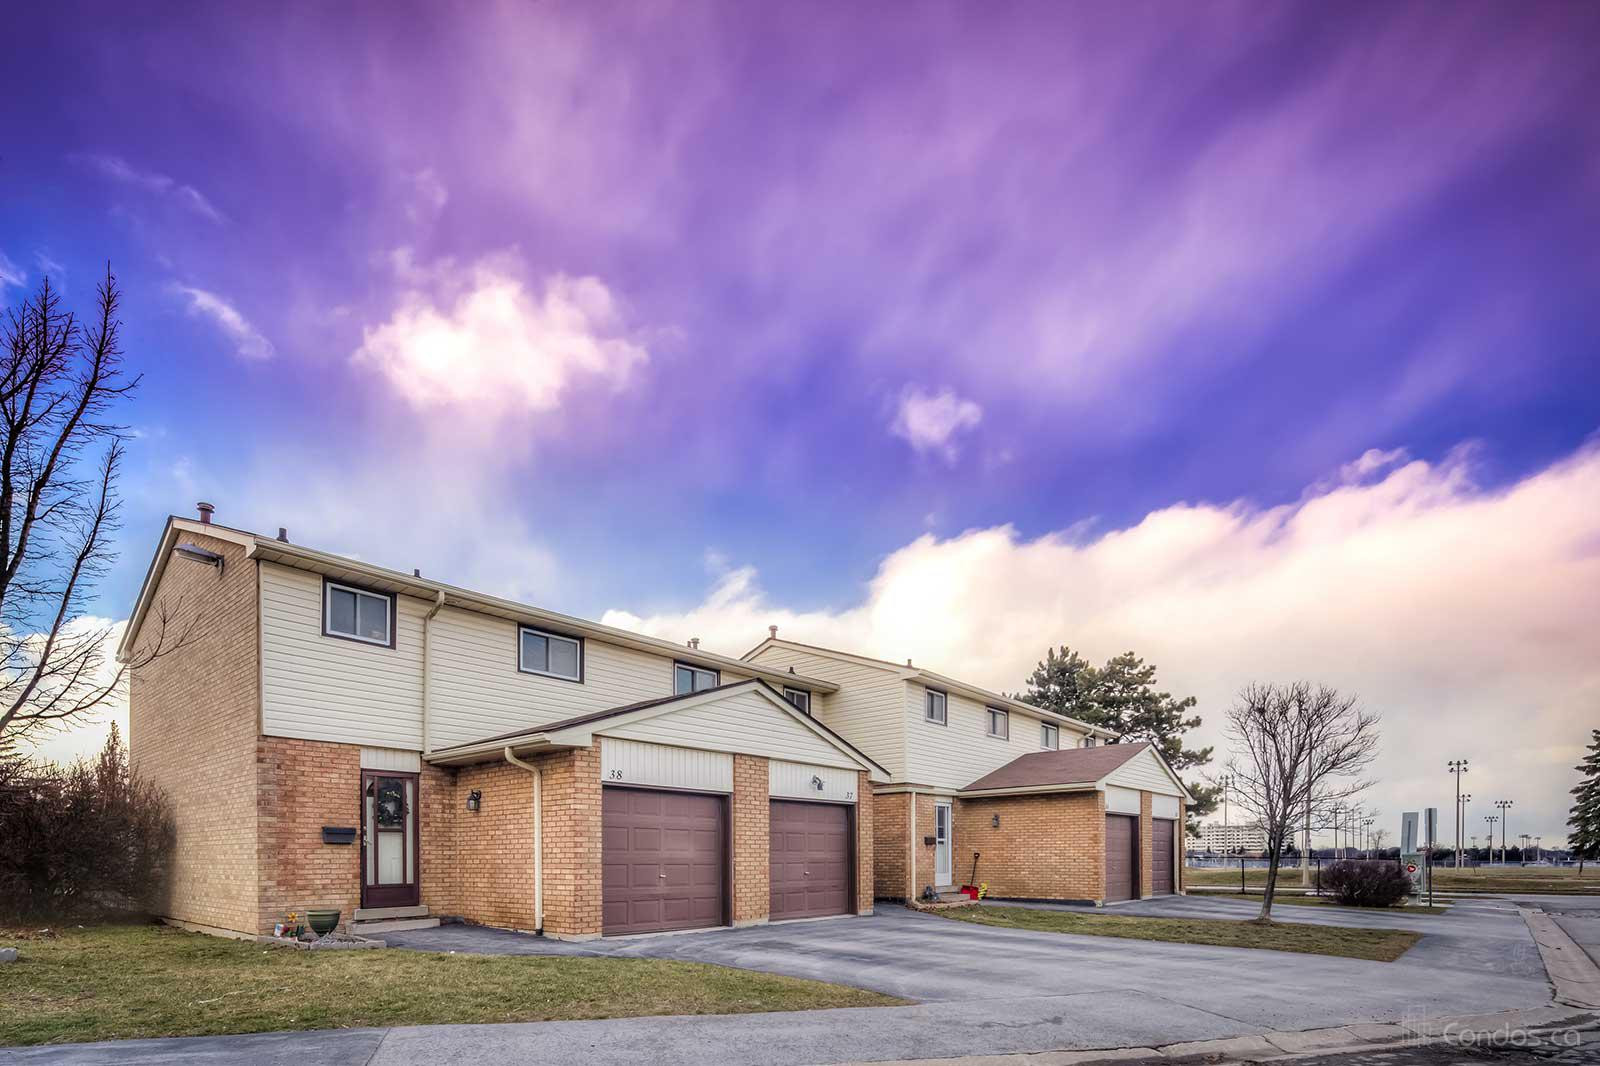 1350 Limeridge Condos at 1350 Limeridge Rd E, Hamilton City 0